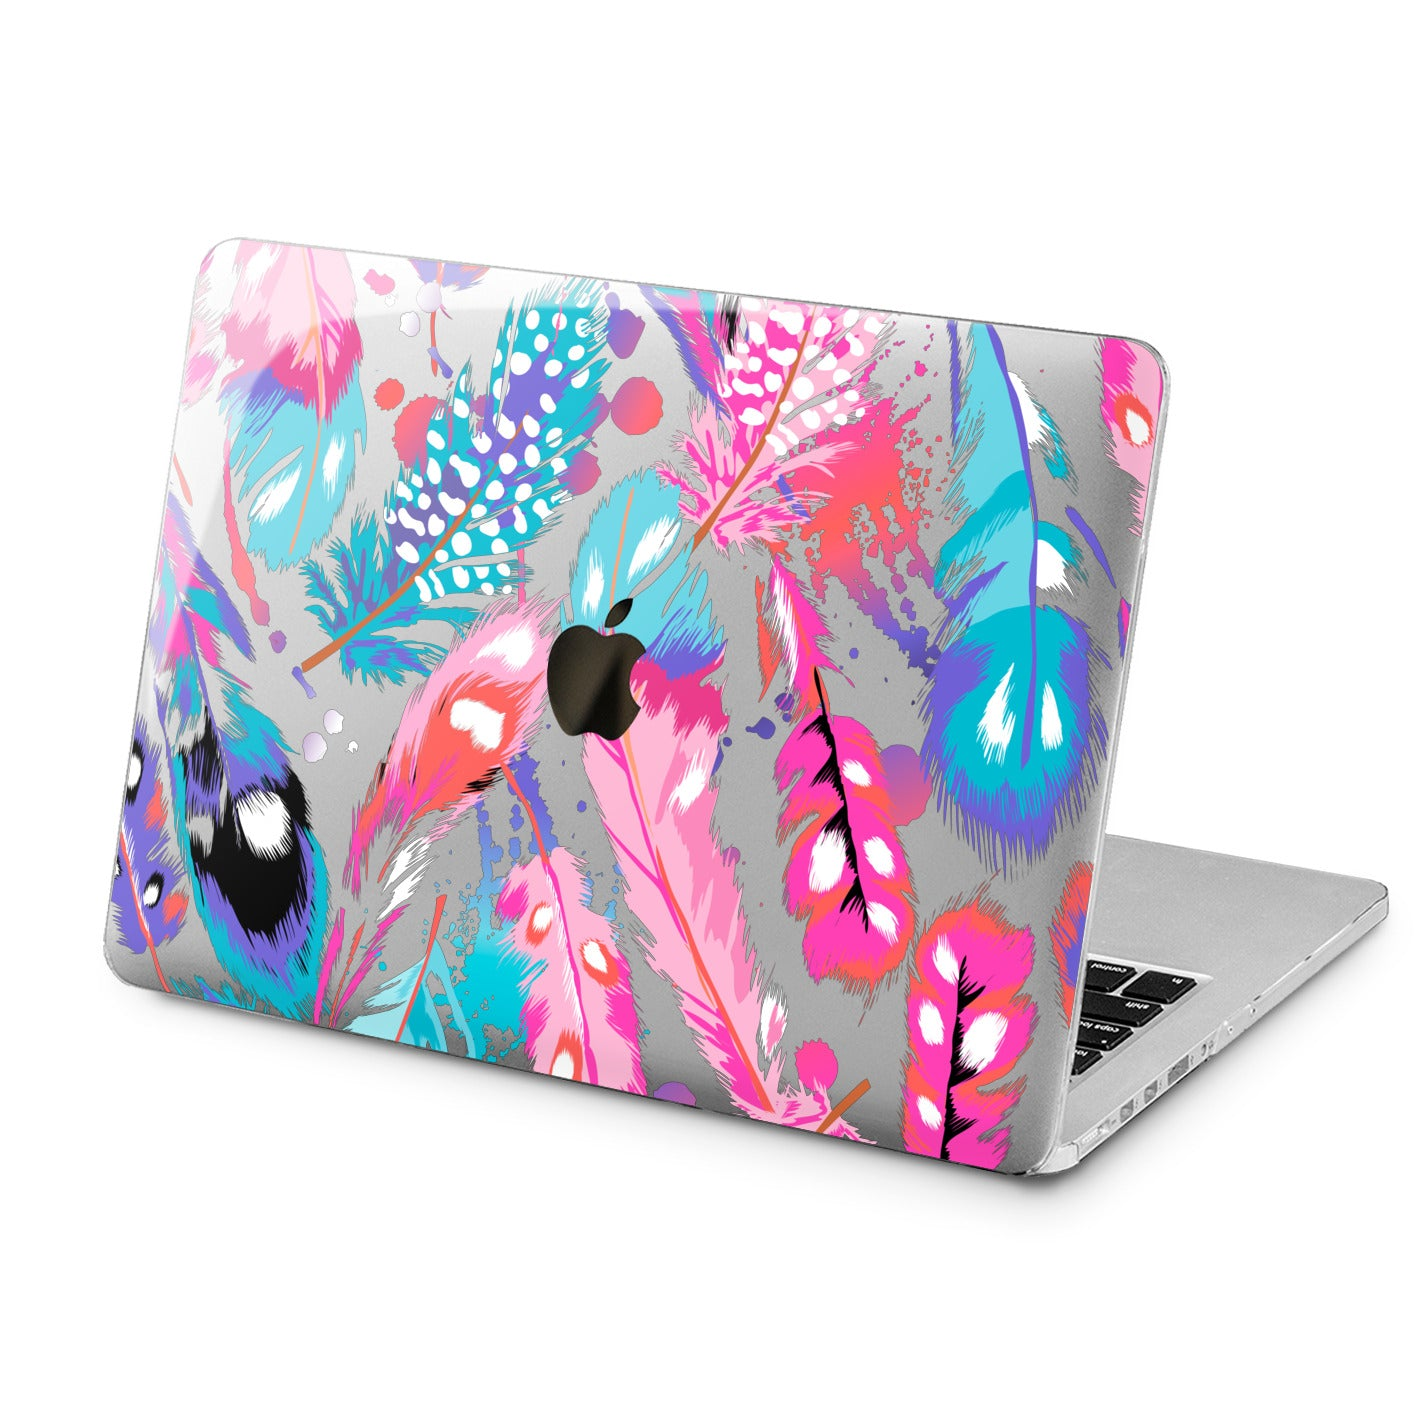 Lex Altern Lex Altern Pink Feathers Case for your Laptop Apple Macbook.